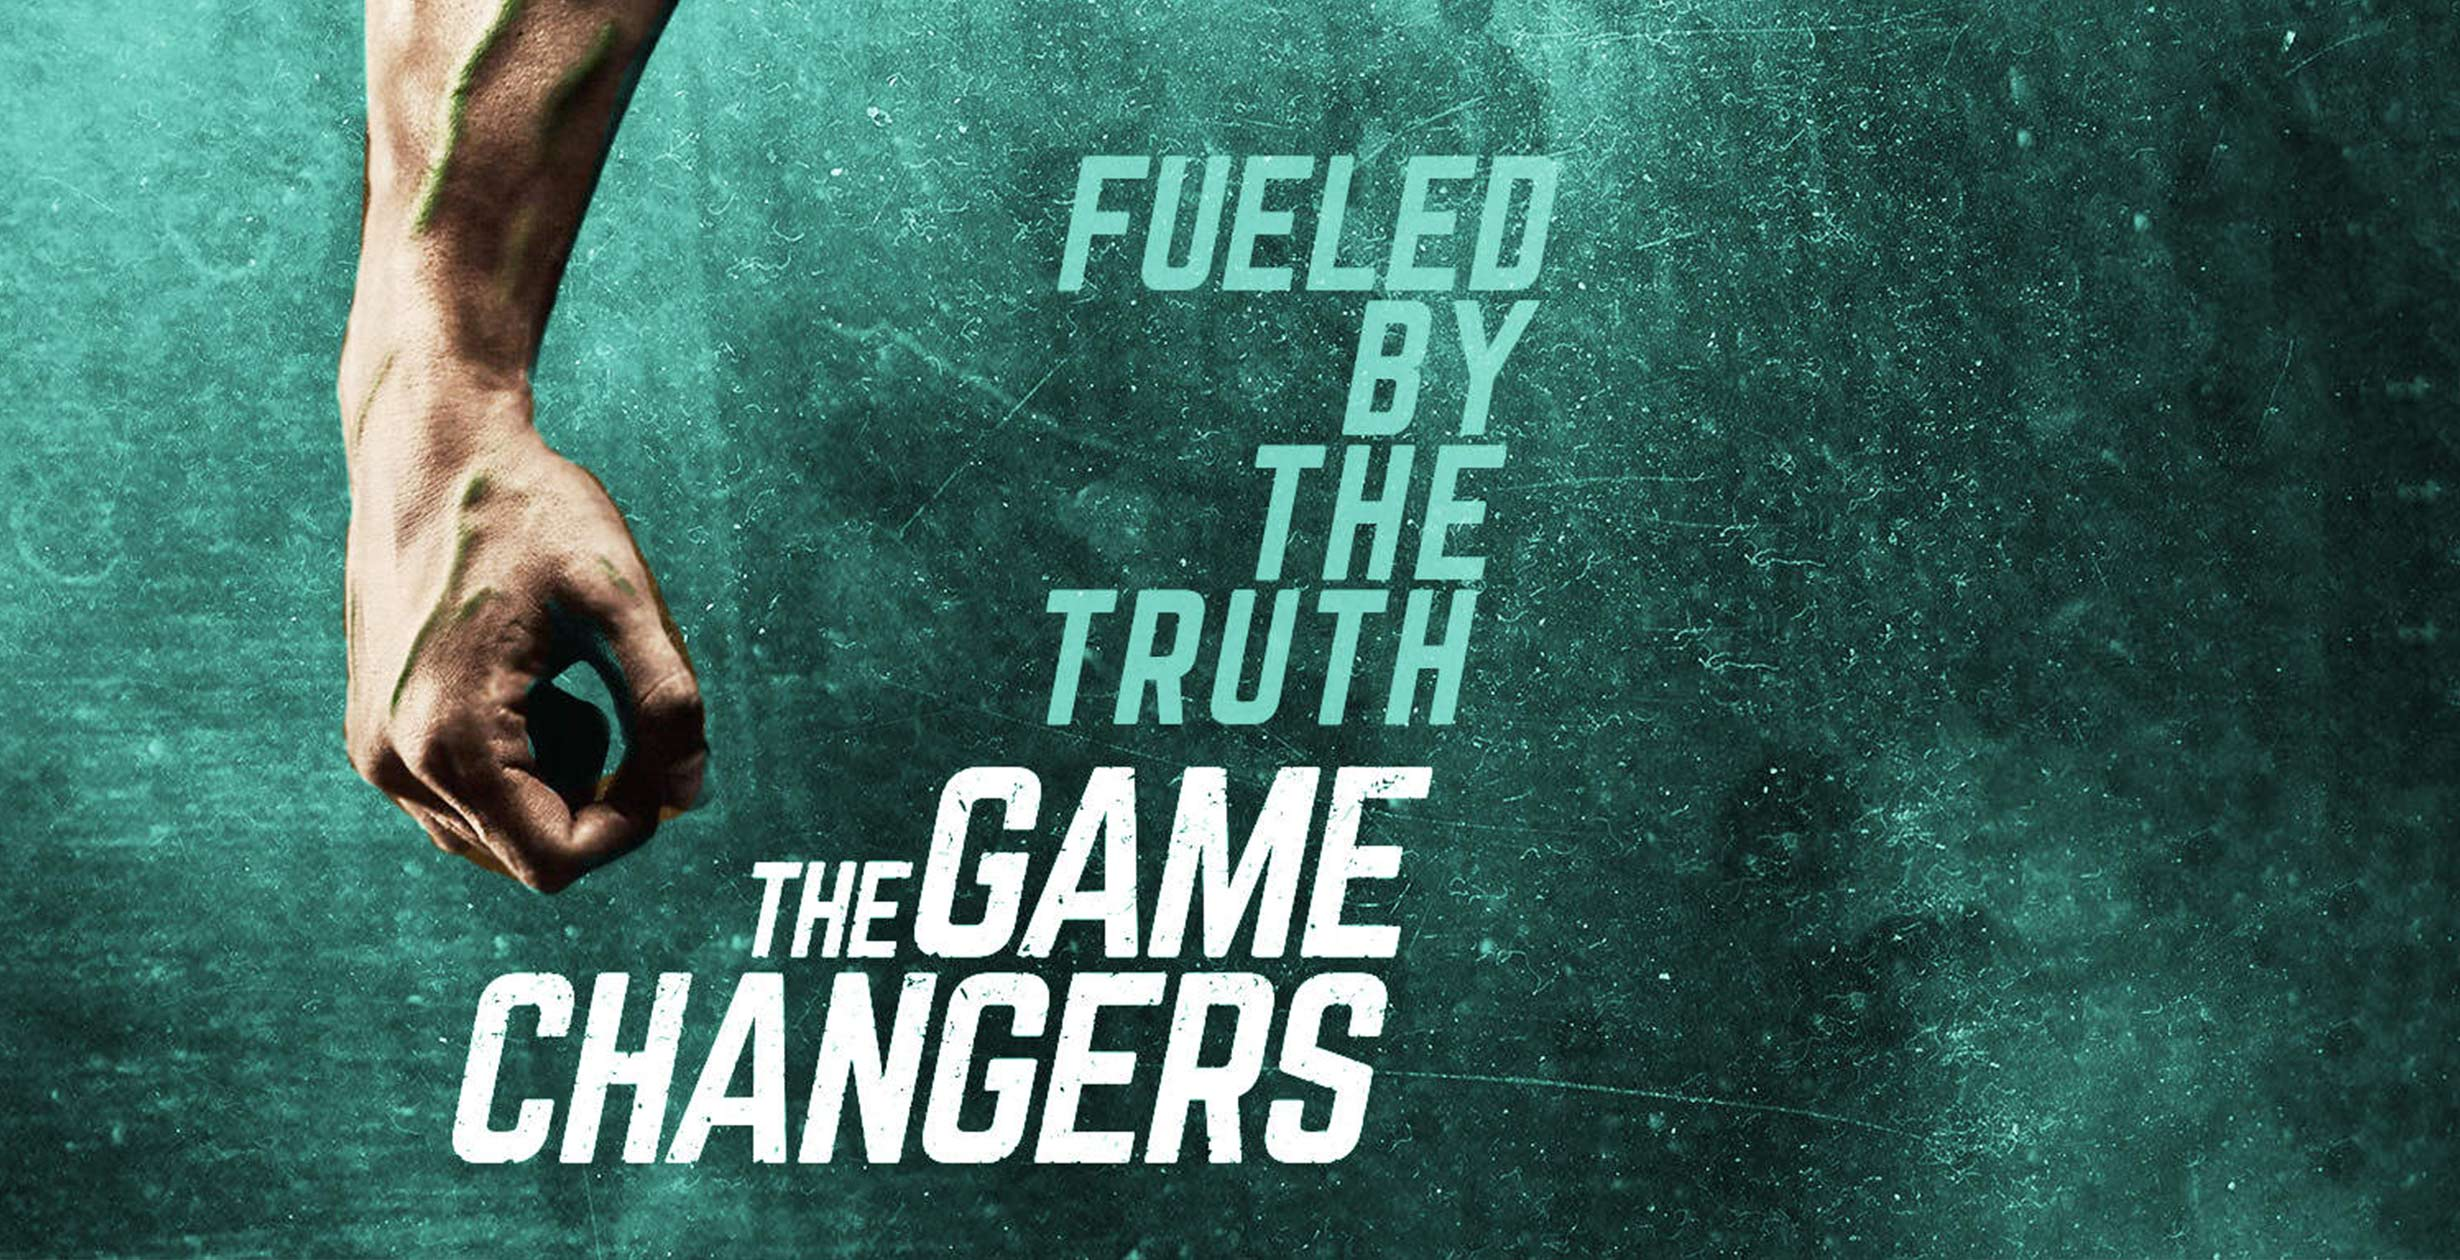 the game changers film documentaire sport musculation végan